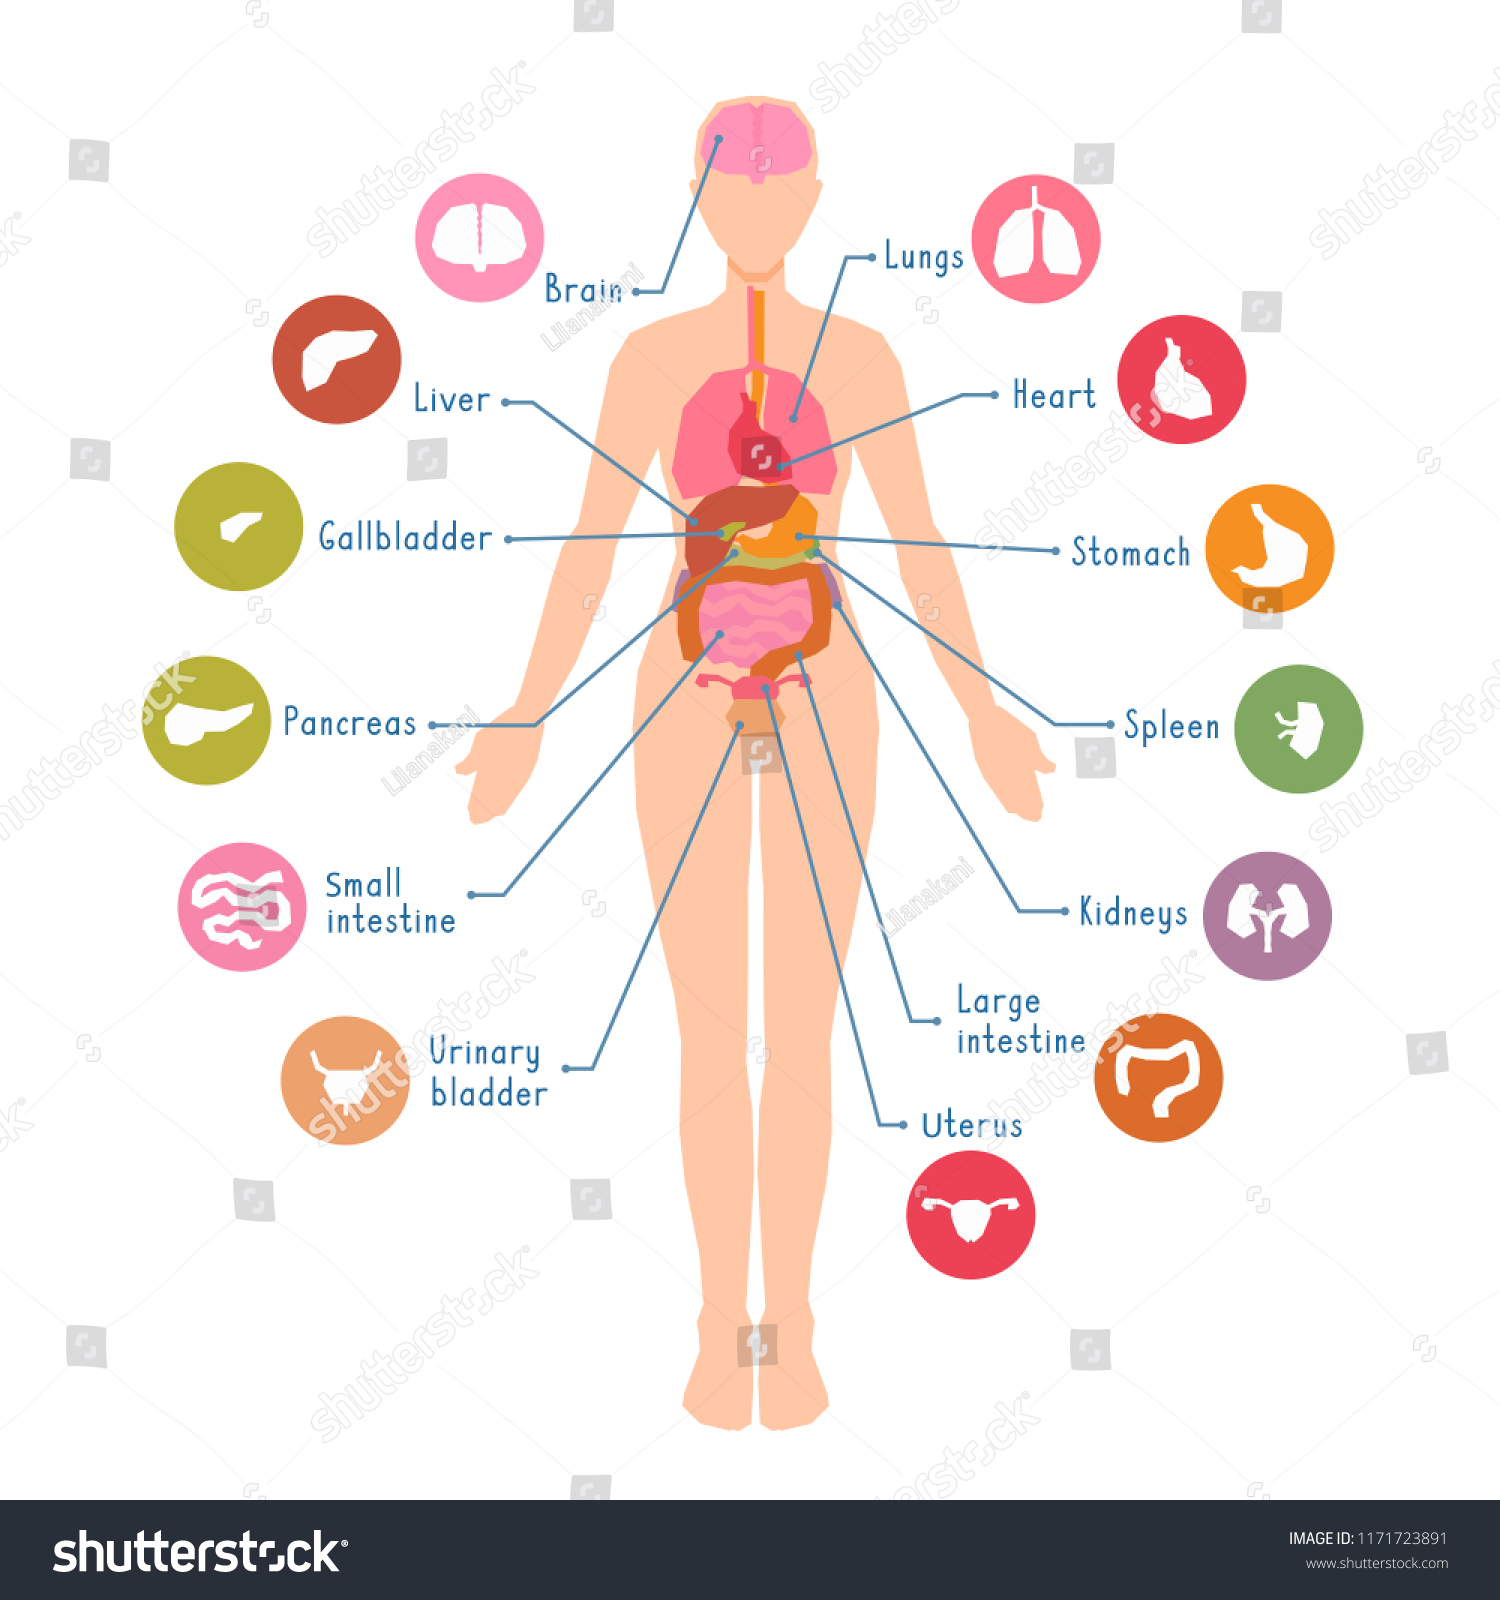 Diagram Major Human Body Internal Organs Stock Vector Royalty Free